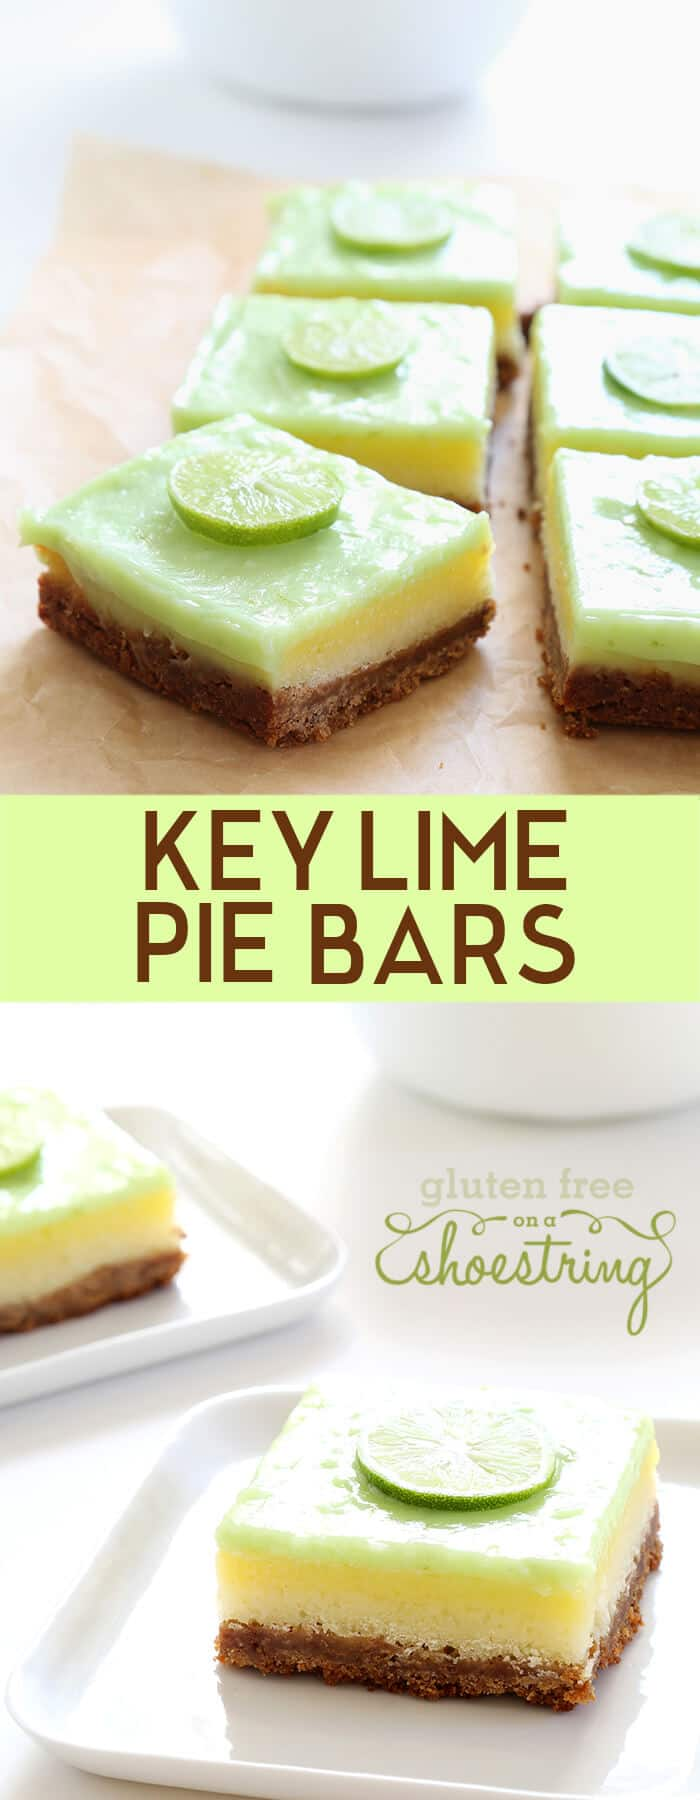 Key lime pie bars on parchment paper and on a white plate